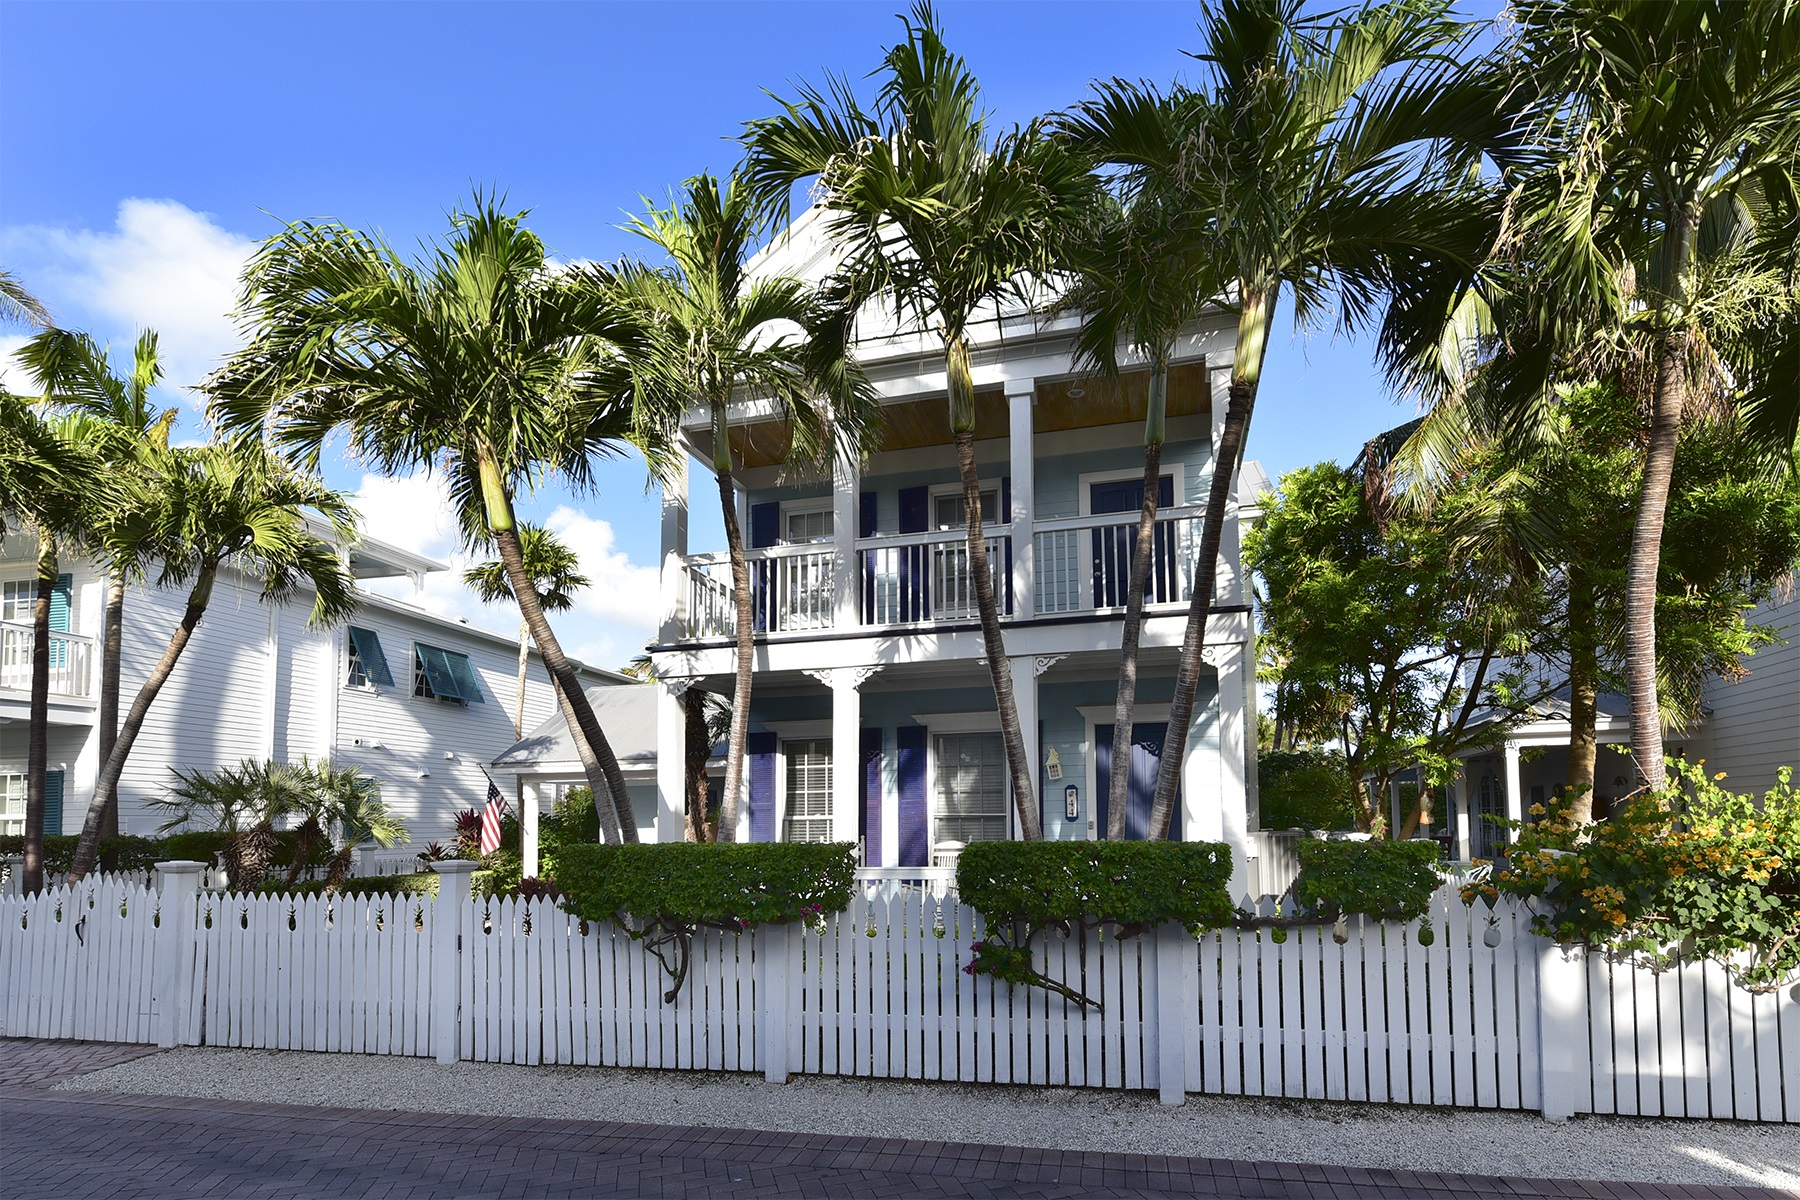 Casa Unifamiliar por un Venta en Sunset Key Home with Ocean Views 44 Sunset Key Drive Key West, Florida 33040 Estados Unidos